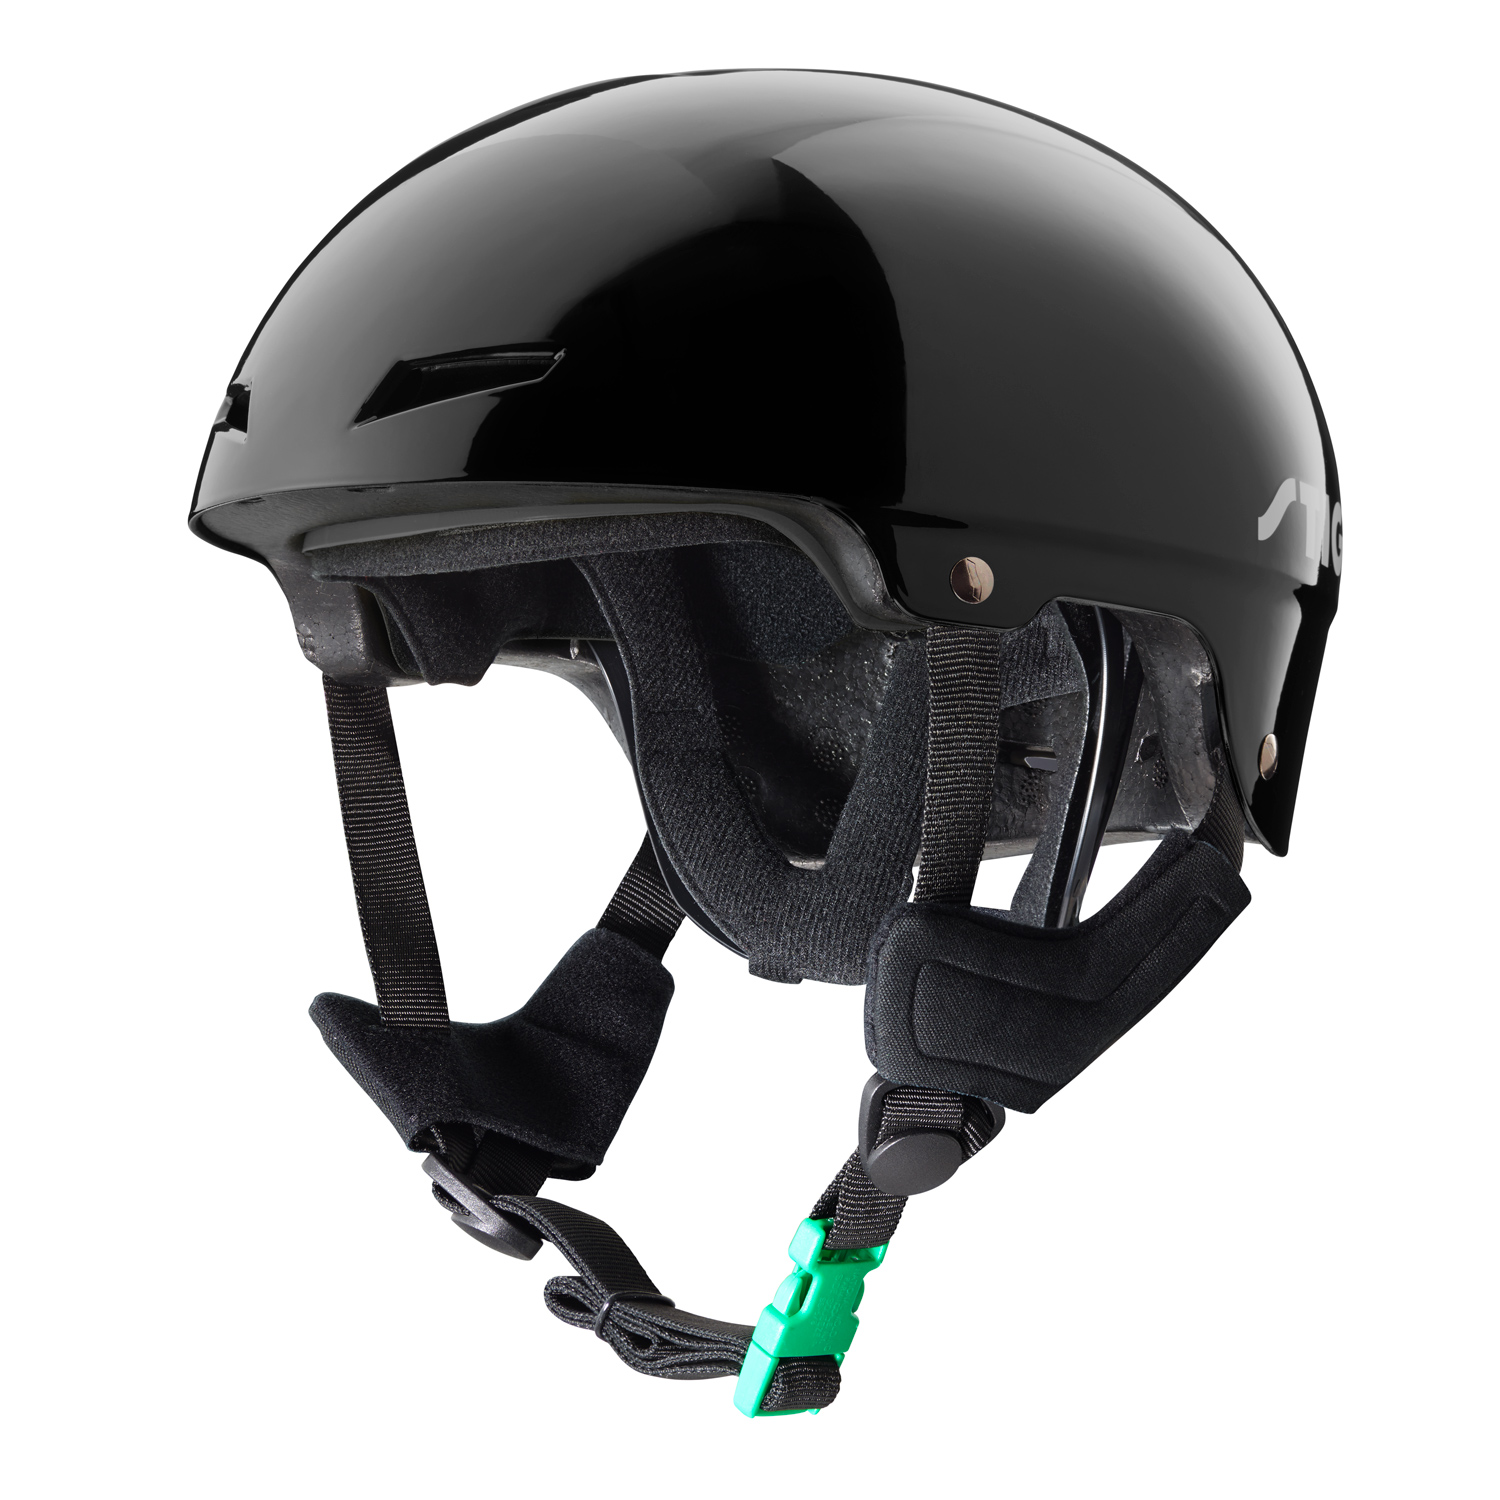 Stiga - Kids Helmet Play - Black M (52-56) (82-5041-05)